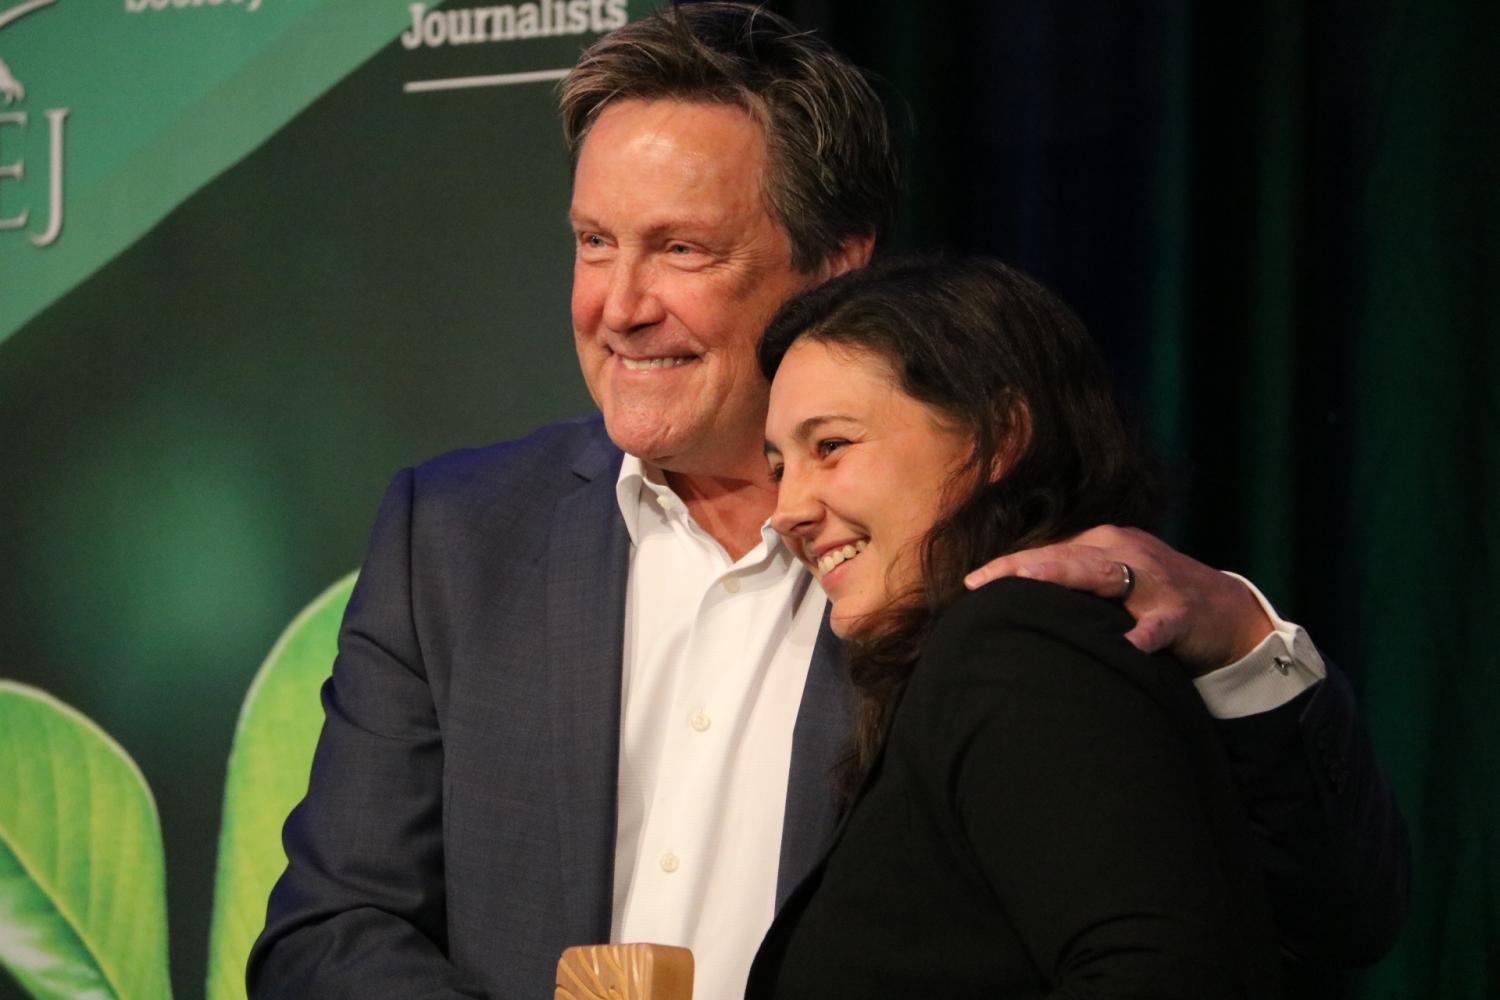 Jeff Burnside embraces Lindsey Fendt as she accepts the award for Outstanding Investigative Reporting, Small Market. Photo by Kelsey Simpkins